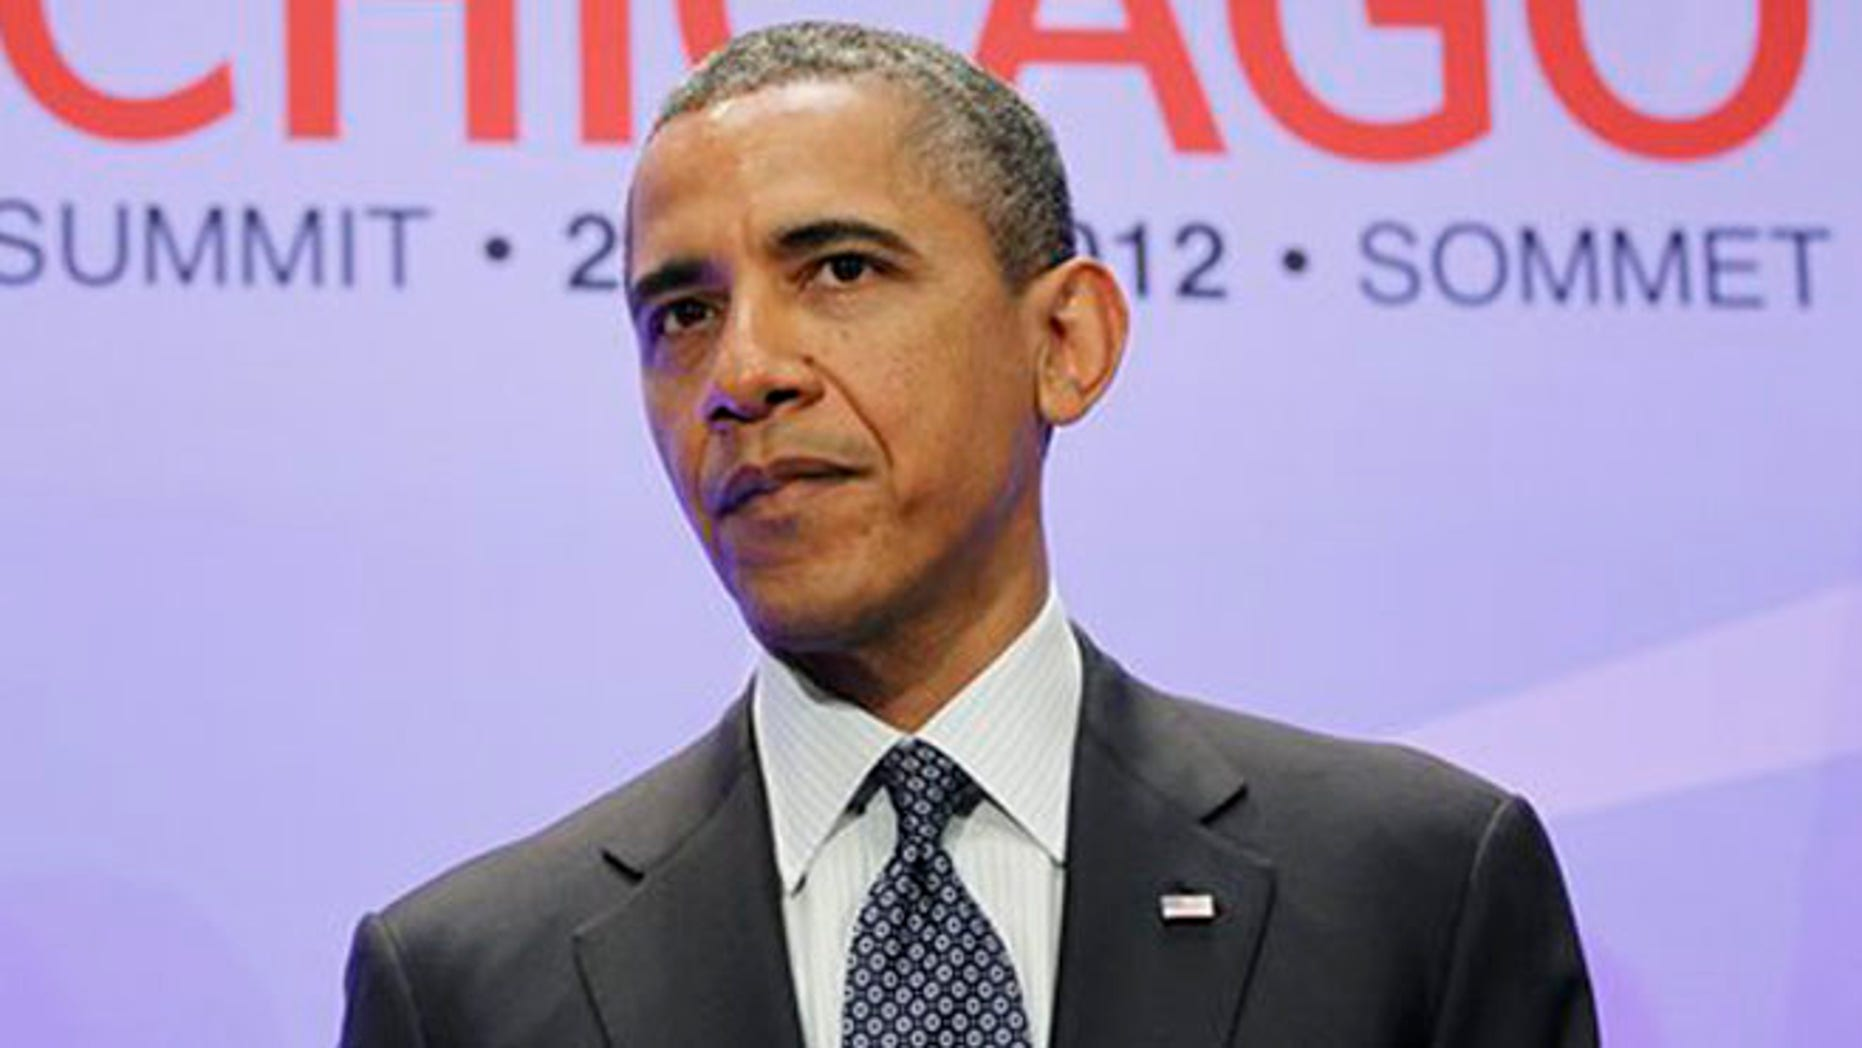 May 20, 2012: President Obama listens during a meeting on the sidelines of the NATO Summit in Chicago.